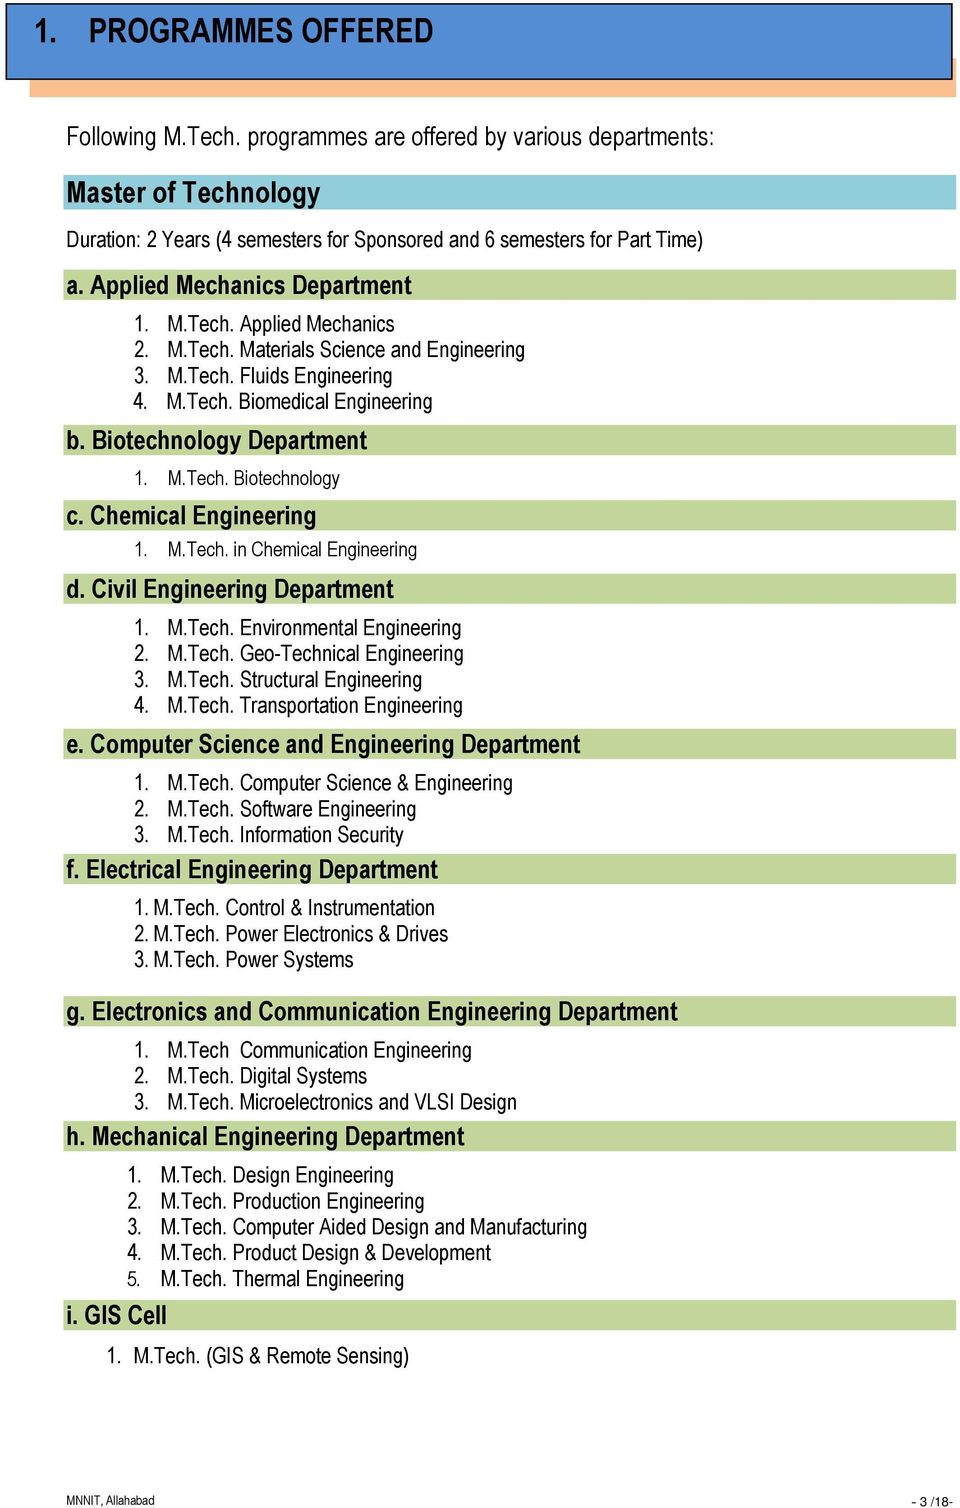 M.Tech. in Chemical d. Civil Department 1. M.Tech. Environmental 2. M.Tech. Geo-Technical 3. M.Tech. Structural 4. M.Tech. Transportation e. Computer Science and Department 1. M.Tech. Computer Science & 2.